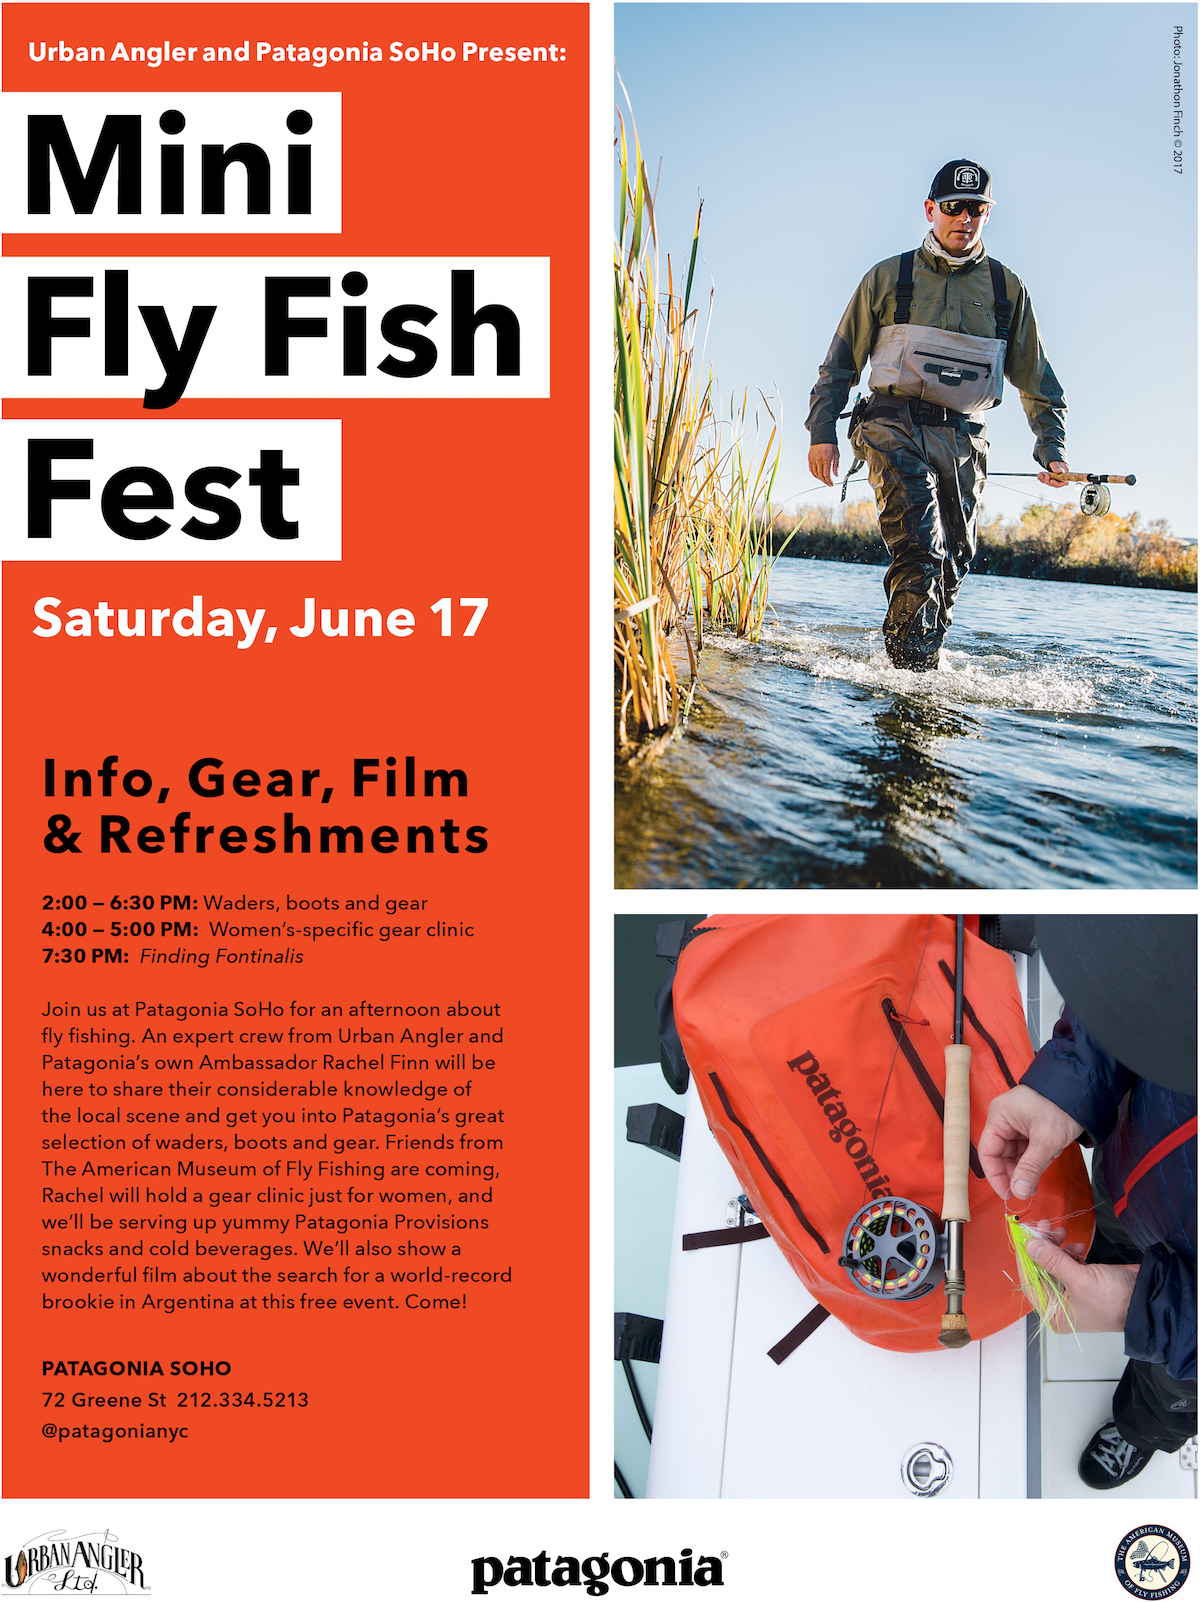 Patagonia x Urban Angler - Mini Fly Fish Fest - SoHo Store Event - 17-JUNE-2017